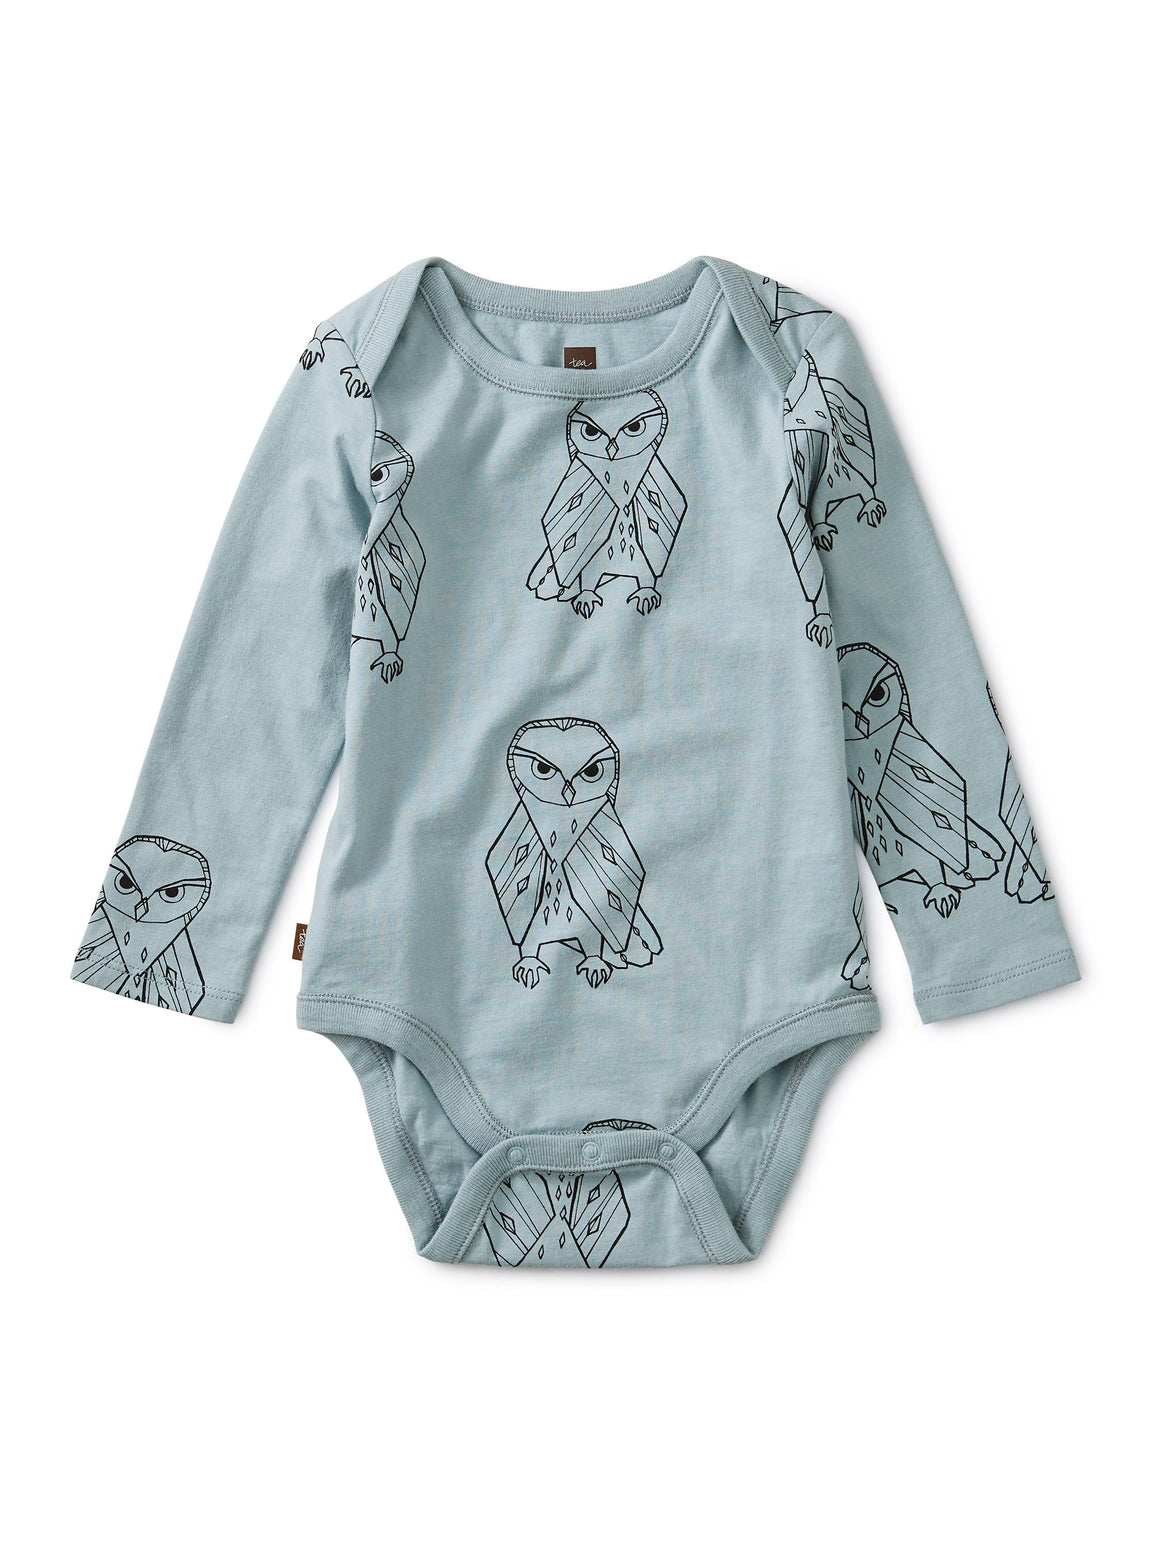 9W42115-Z32 - Tea Collection Owl Print Baby Long Sleeve Onesie Onesie Tea Collection